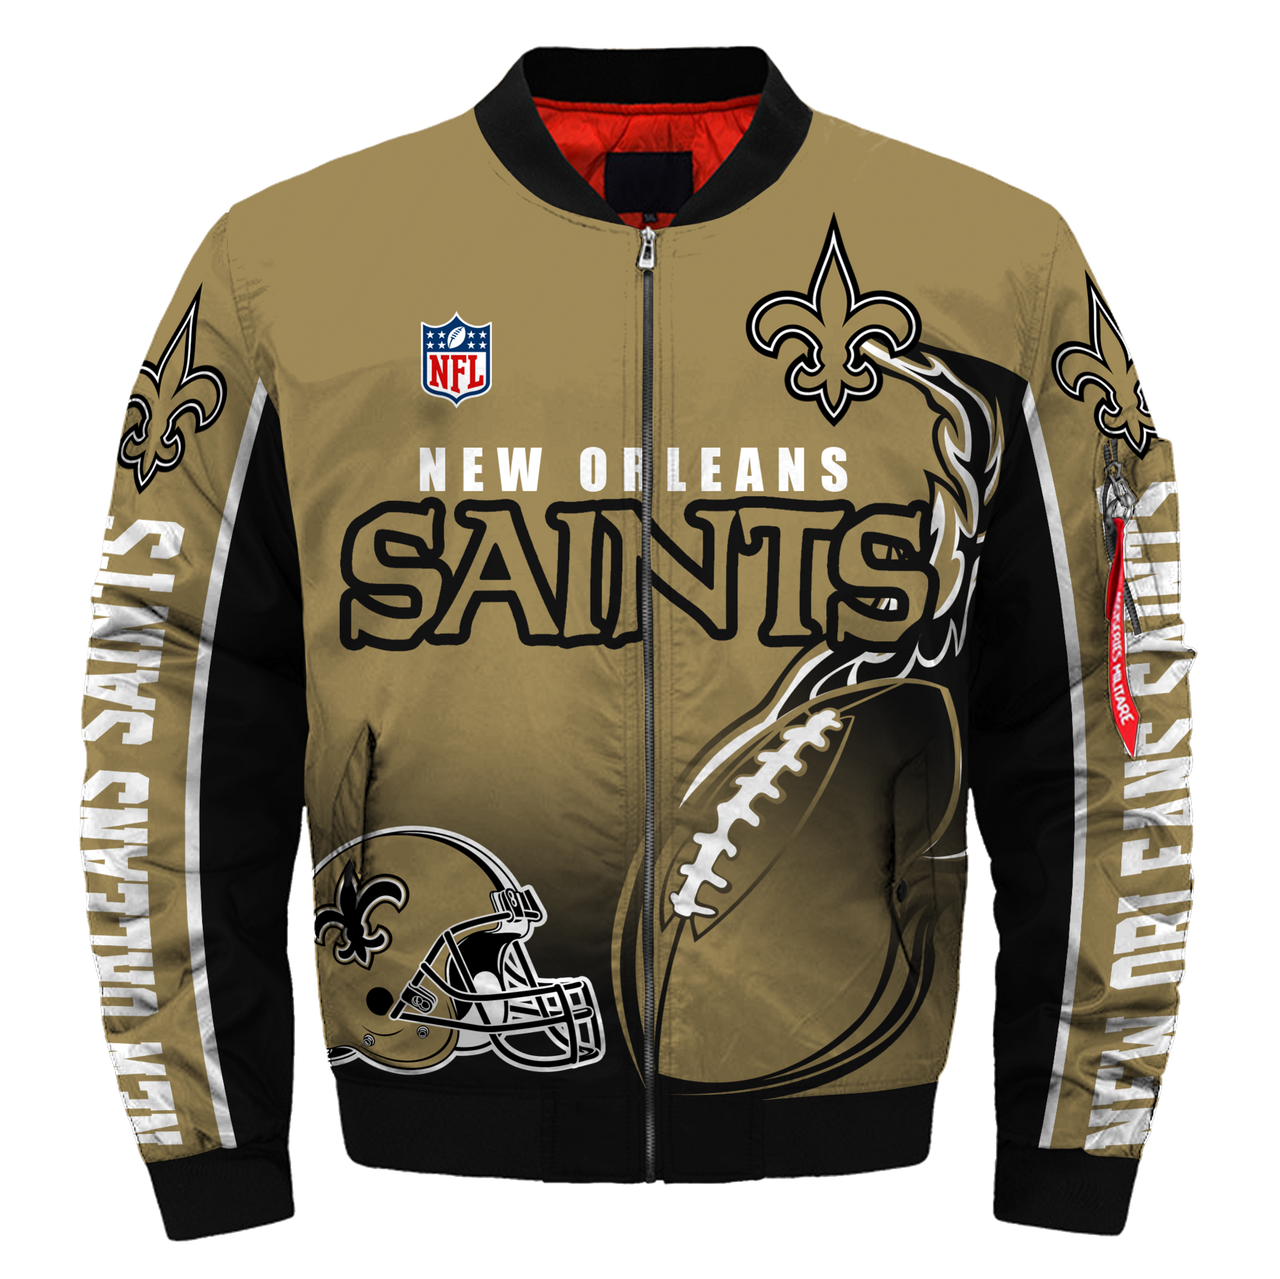 0accef5f6 **(OFFICIAL-NEW-N.F.L.NEW-ORLEANS-SAINTS-JACKETS/IN-OFFICIAL-SAINTS-TEAM-COLORS  ...